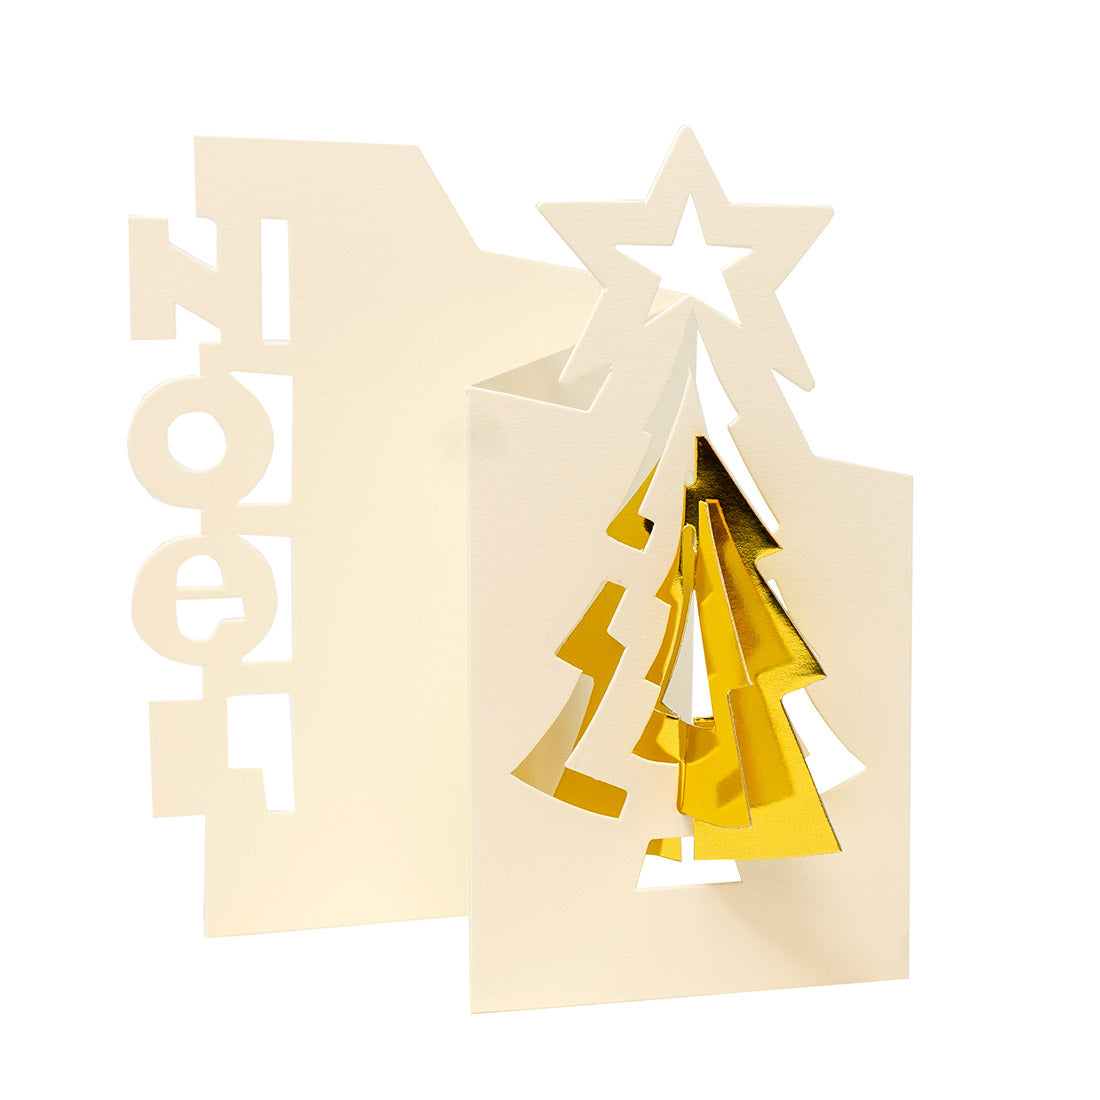 Image De Noel 3d.3d Die Cut Noel Holiday Cards